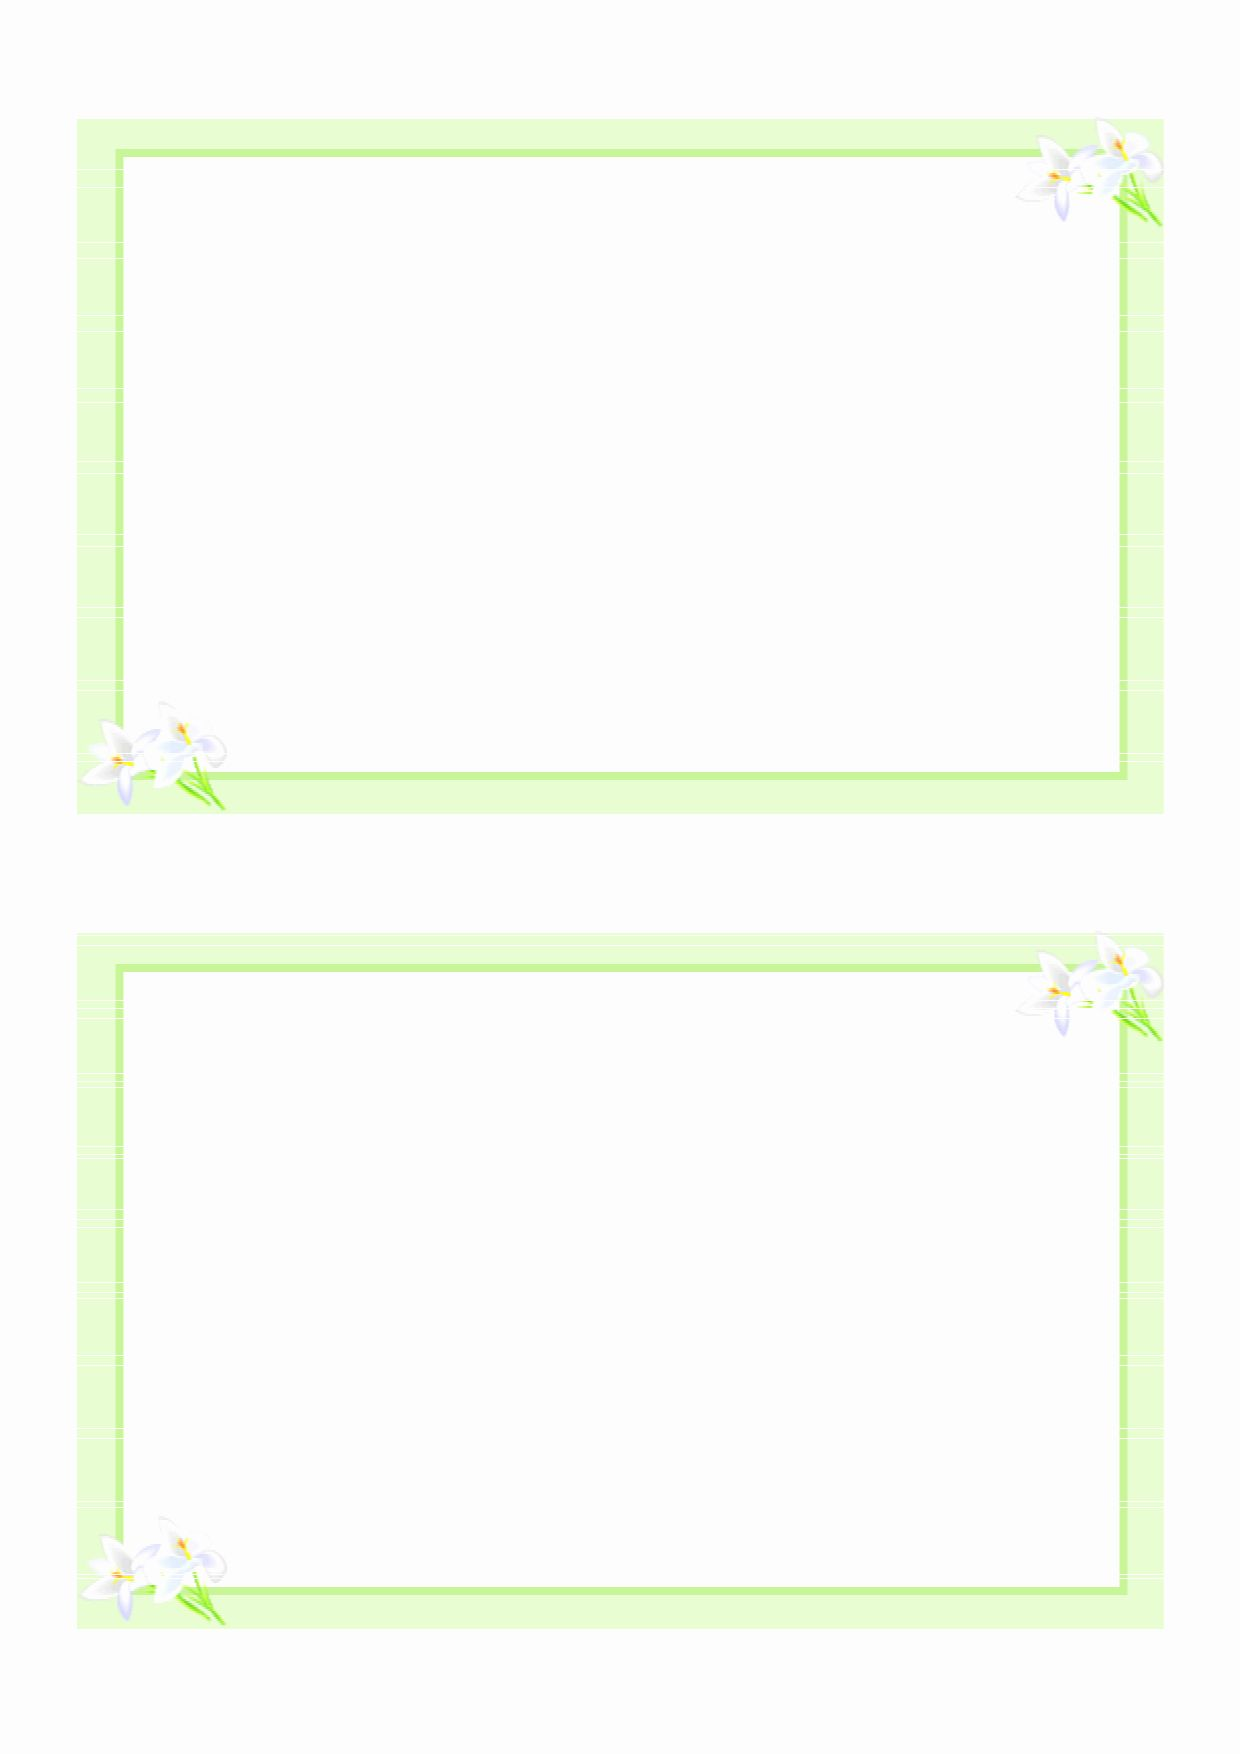 Template For Note Cards Fresh 8 Best Of Printable Blank Pledge Card Templates In 2020 Blank Card Template Free Printable Greeting Cards Free Business Card Templates